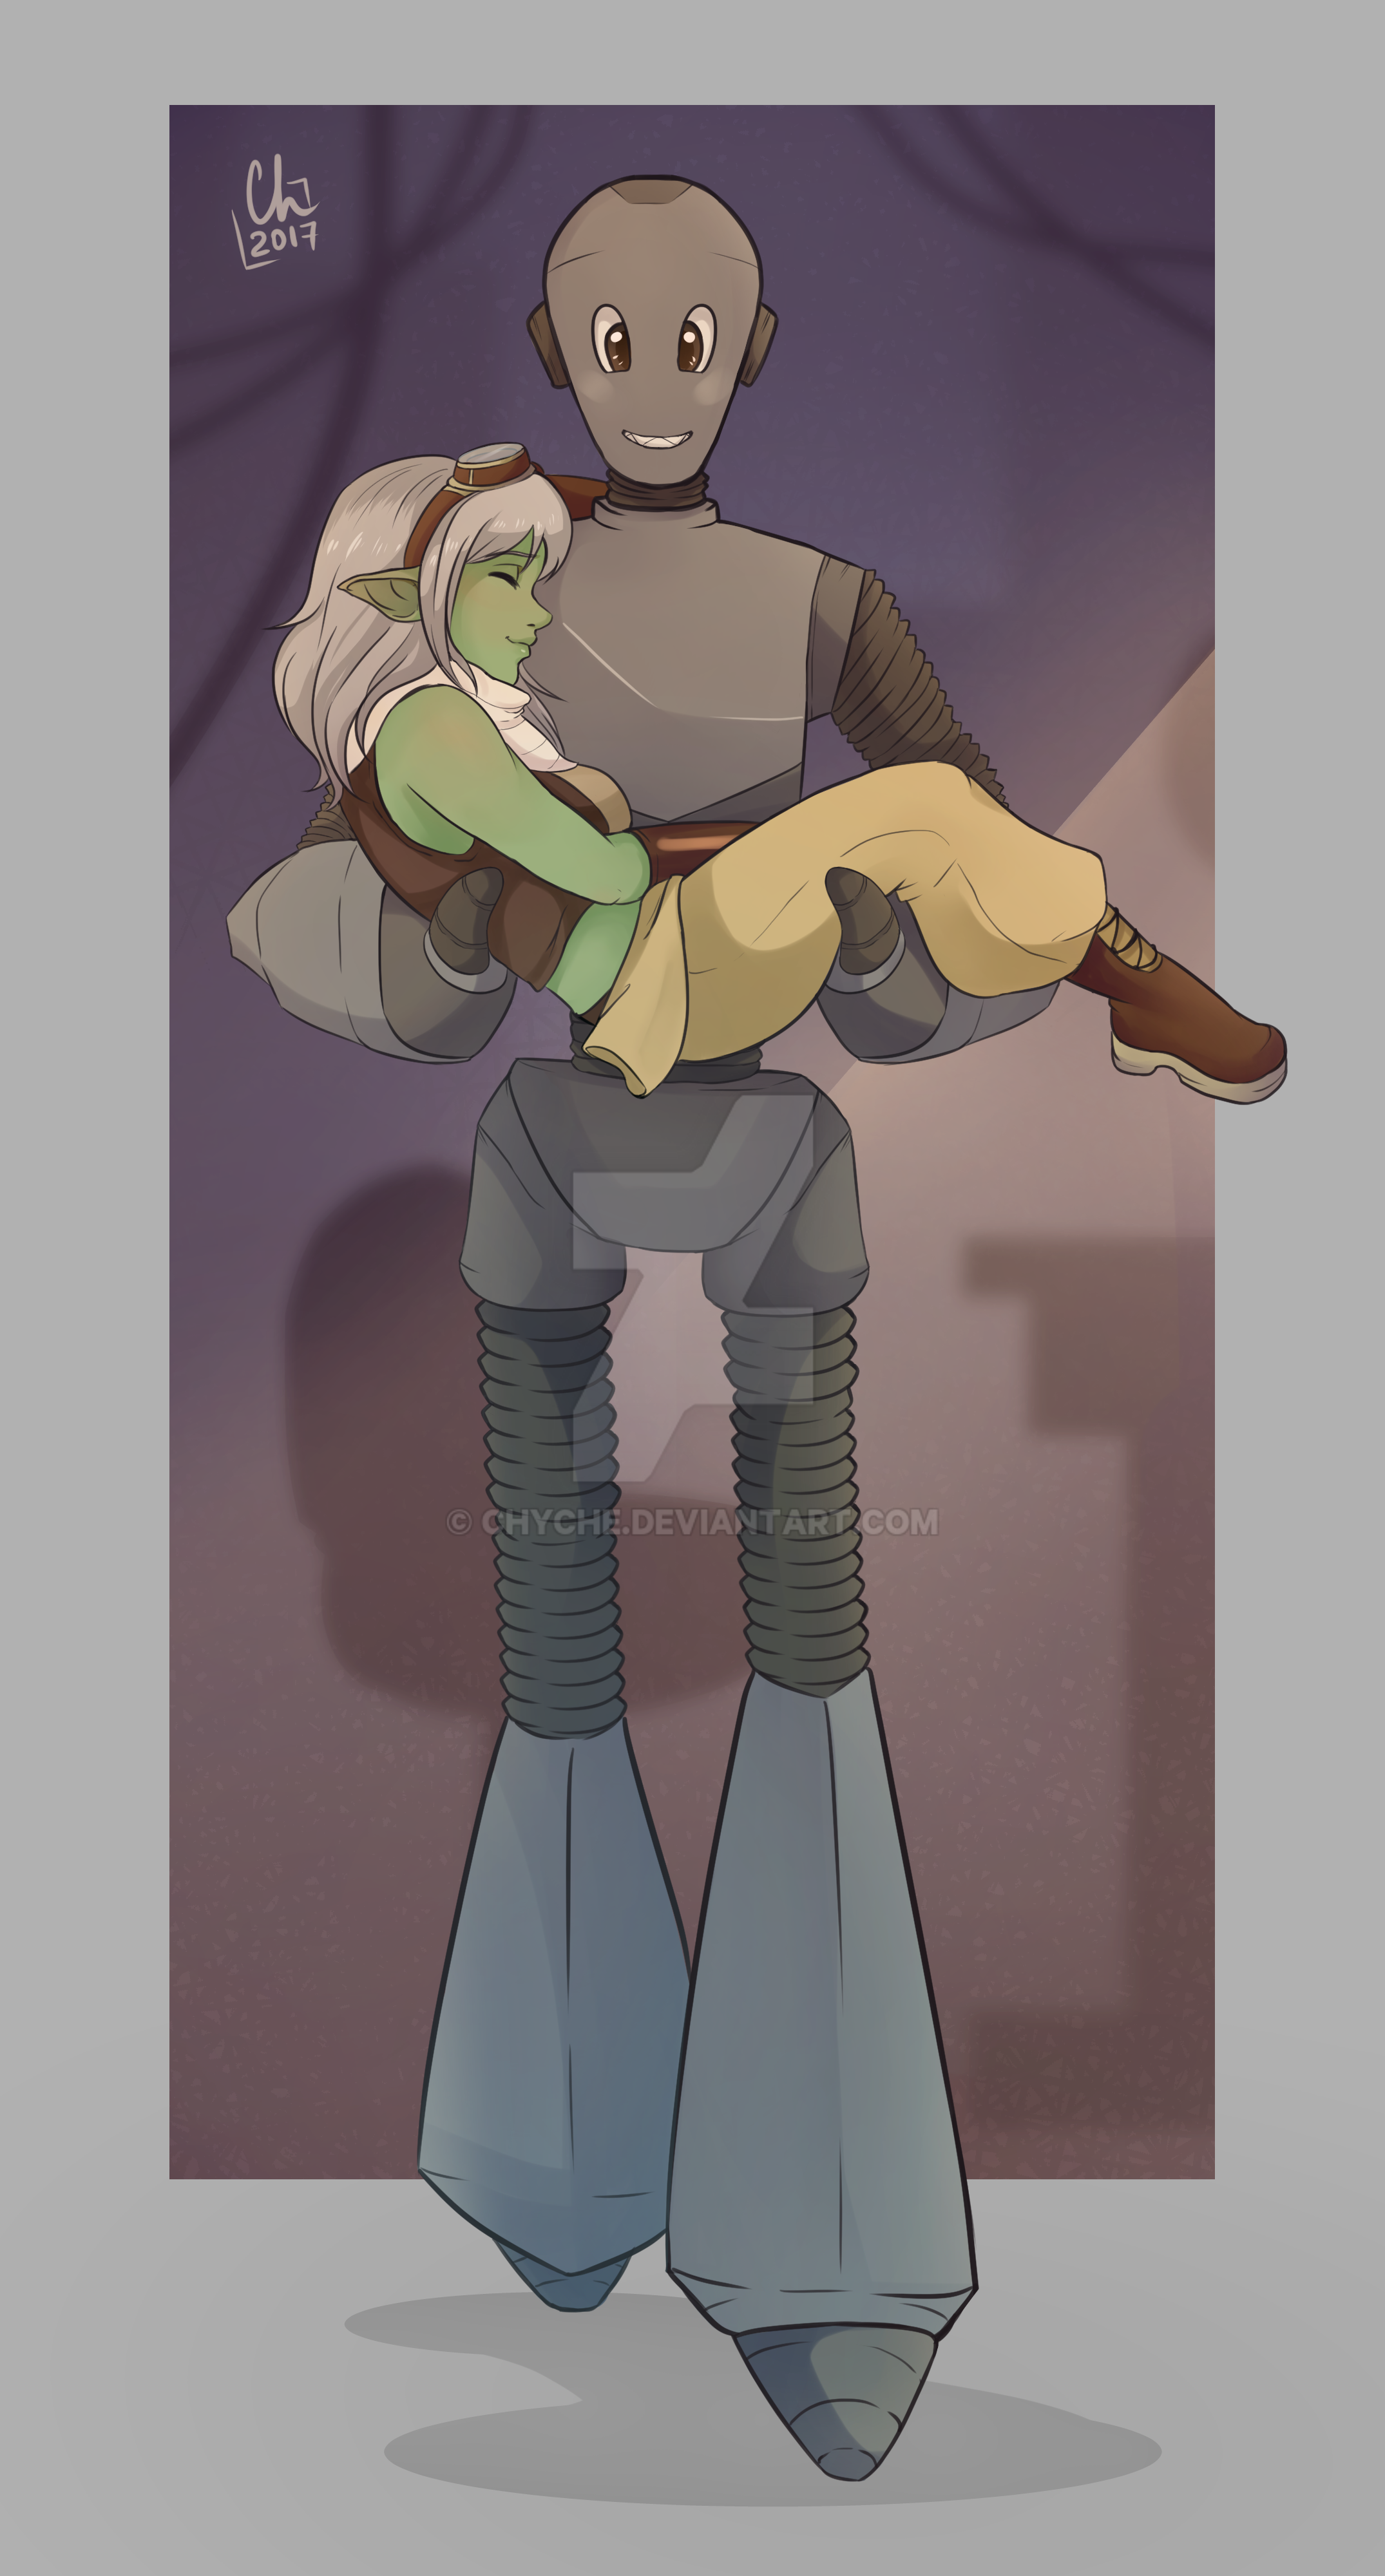 [Goodnight]-Goblin Girl and her Robot by Chyche